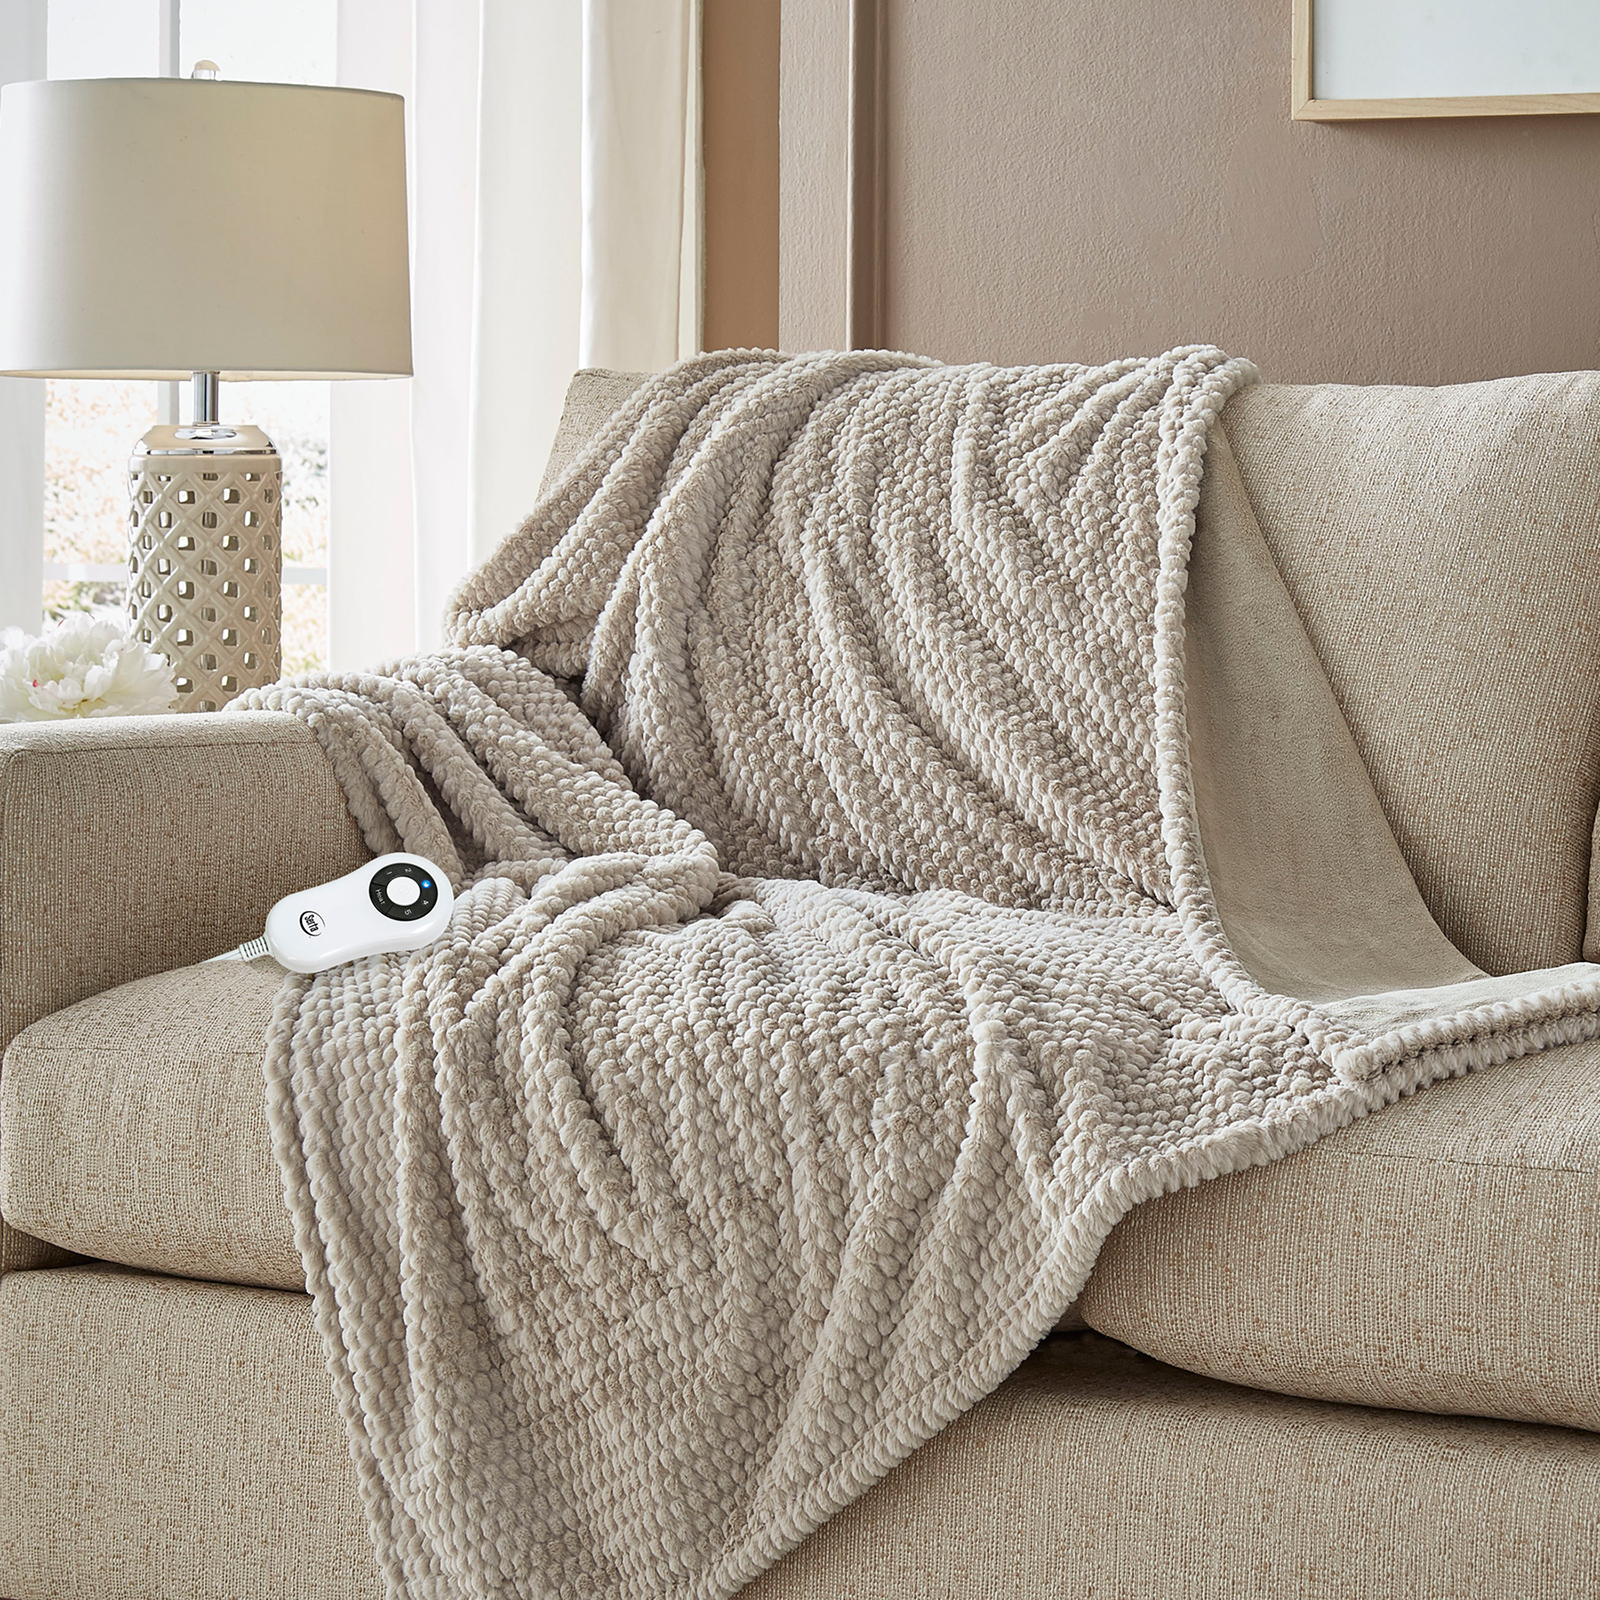 Serta Honeycomb Cozy Electric Blanket Find A Gift For